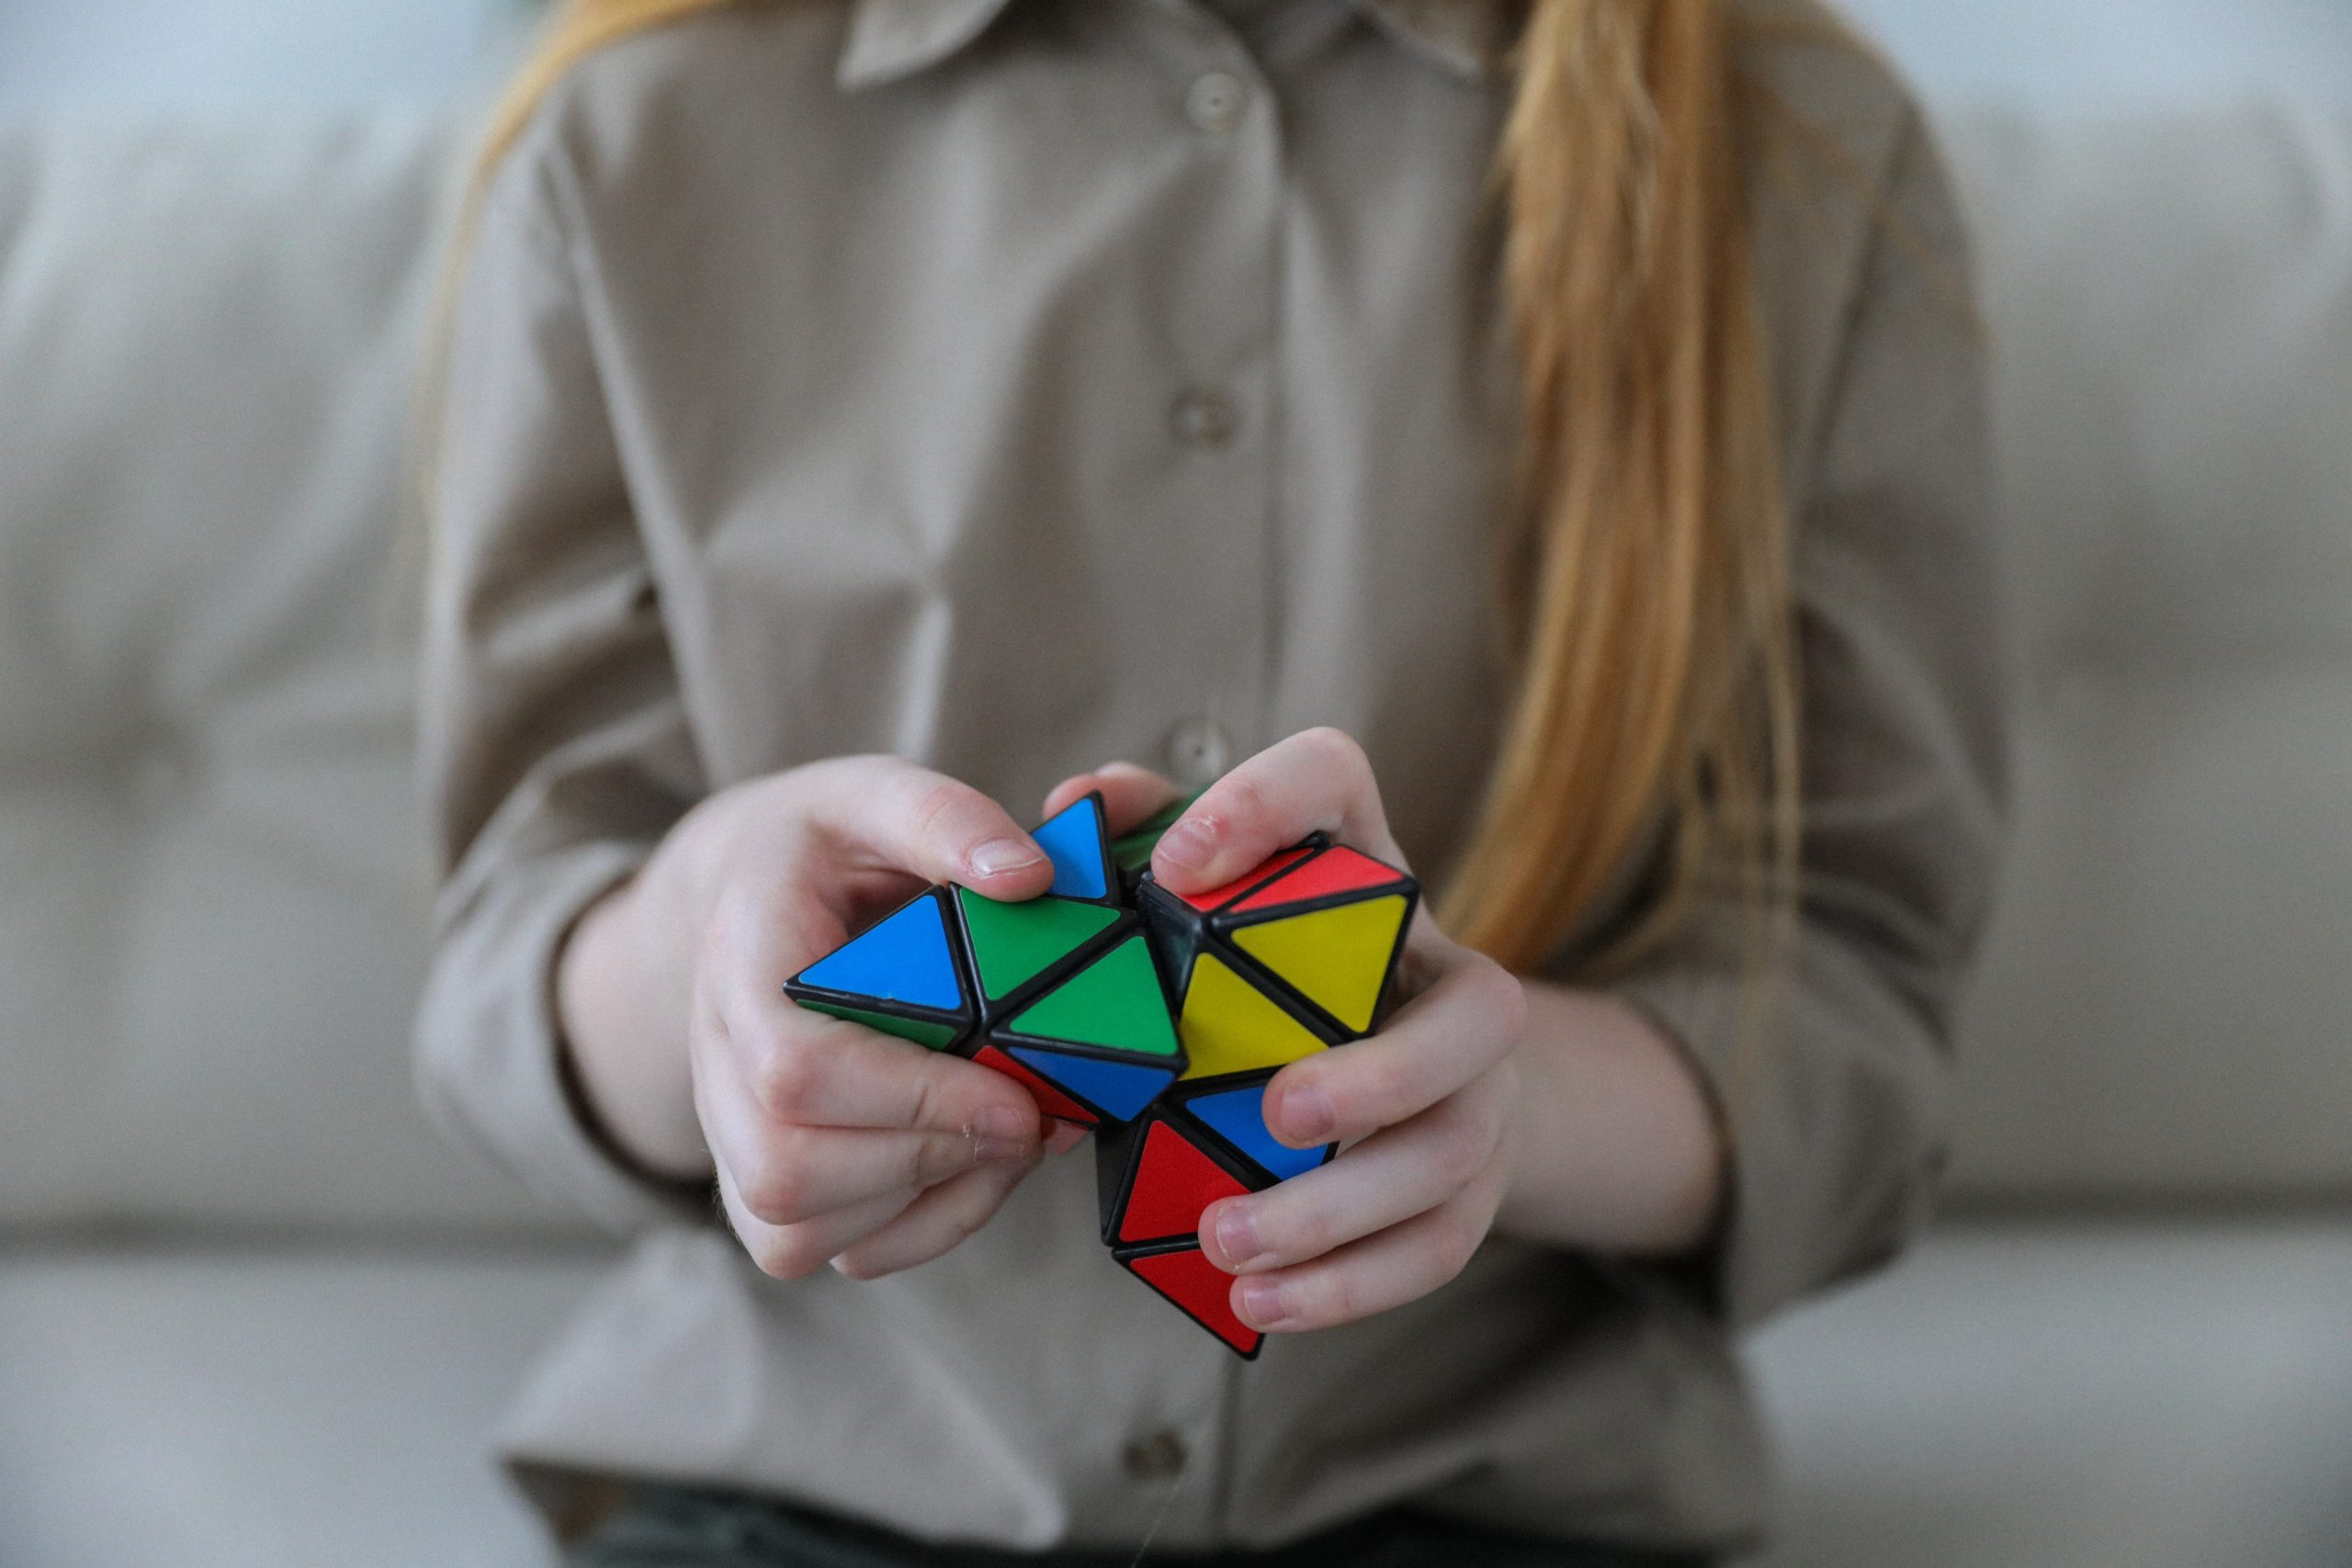 A girl is holding a brightly colored Rubik's pyramid puzzle in her hands.